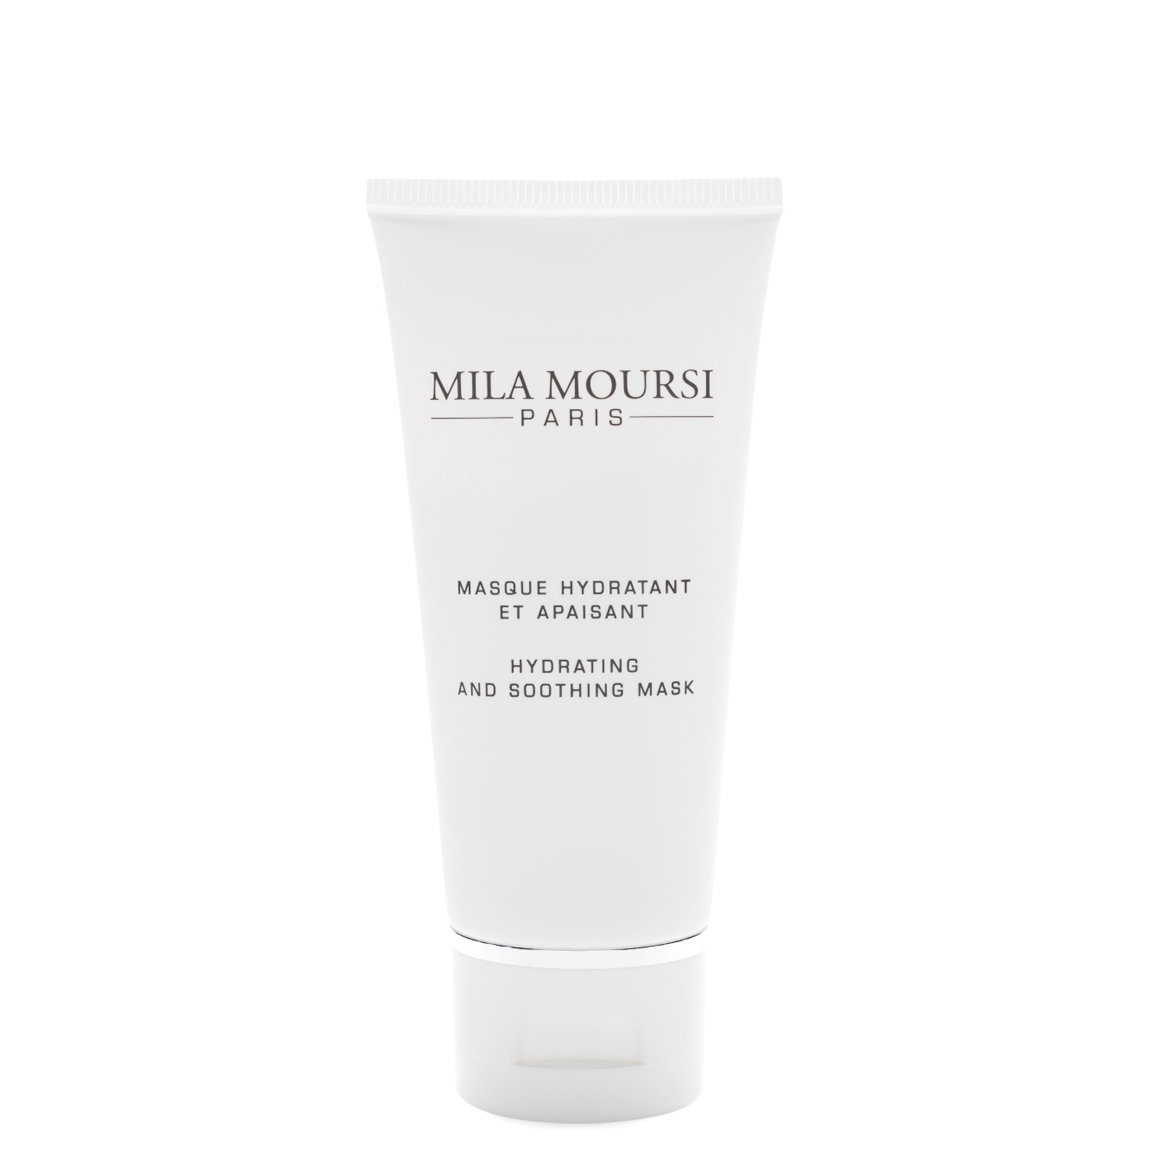 Mila Moursi Hydrating & Soothing Mask product smear.